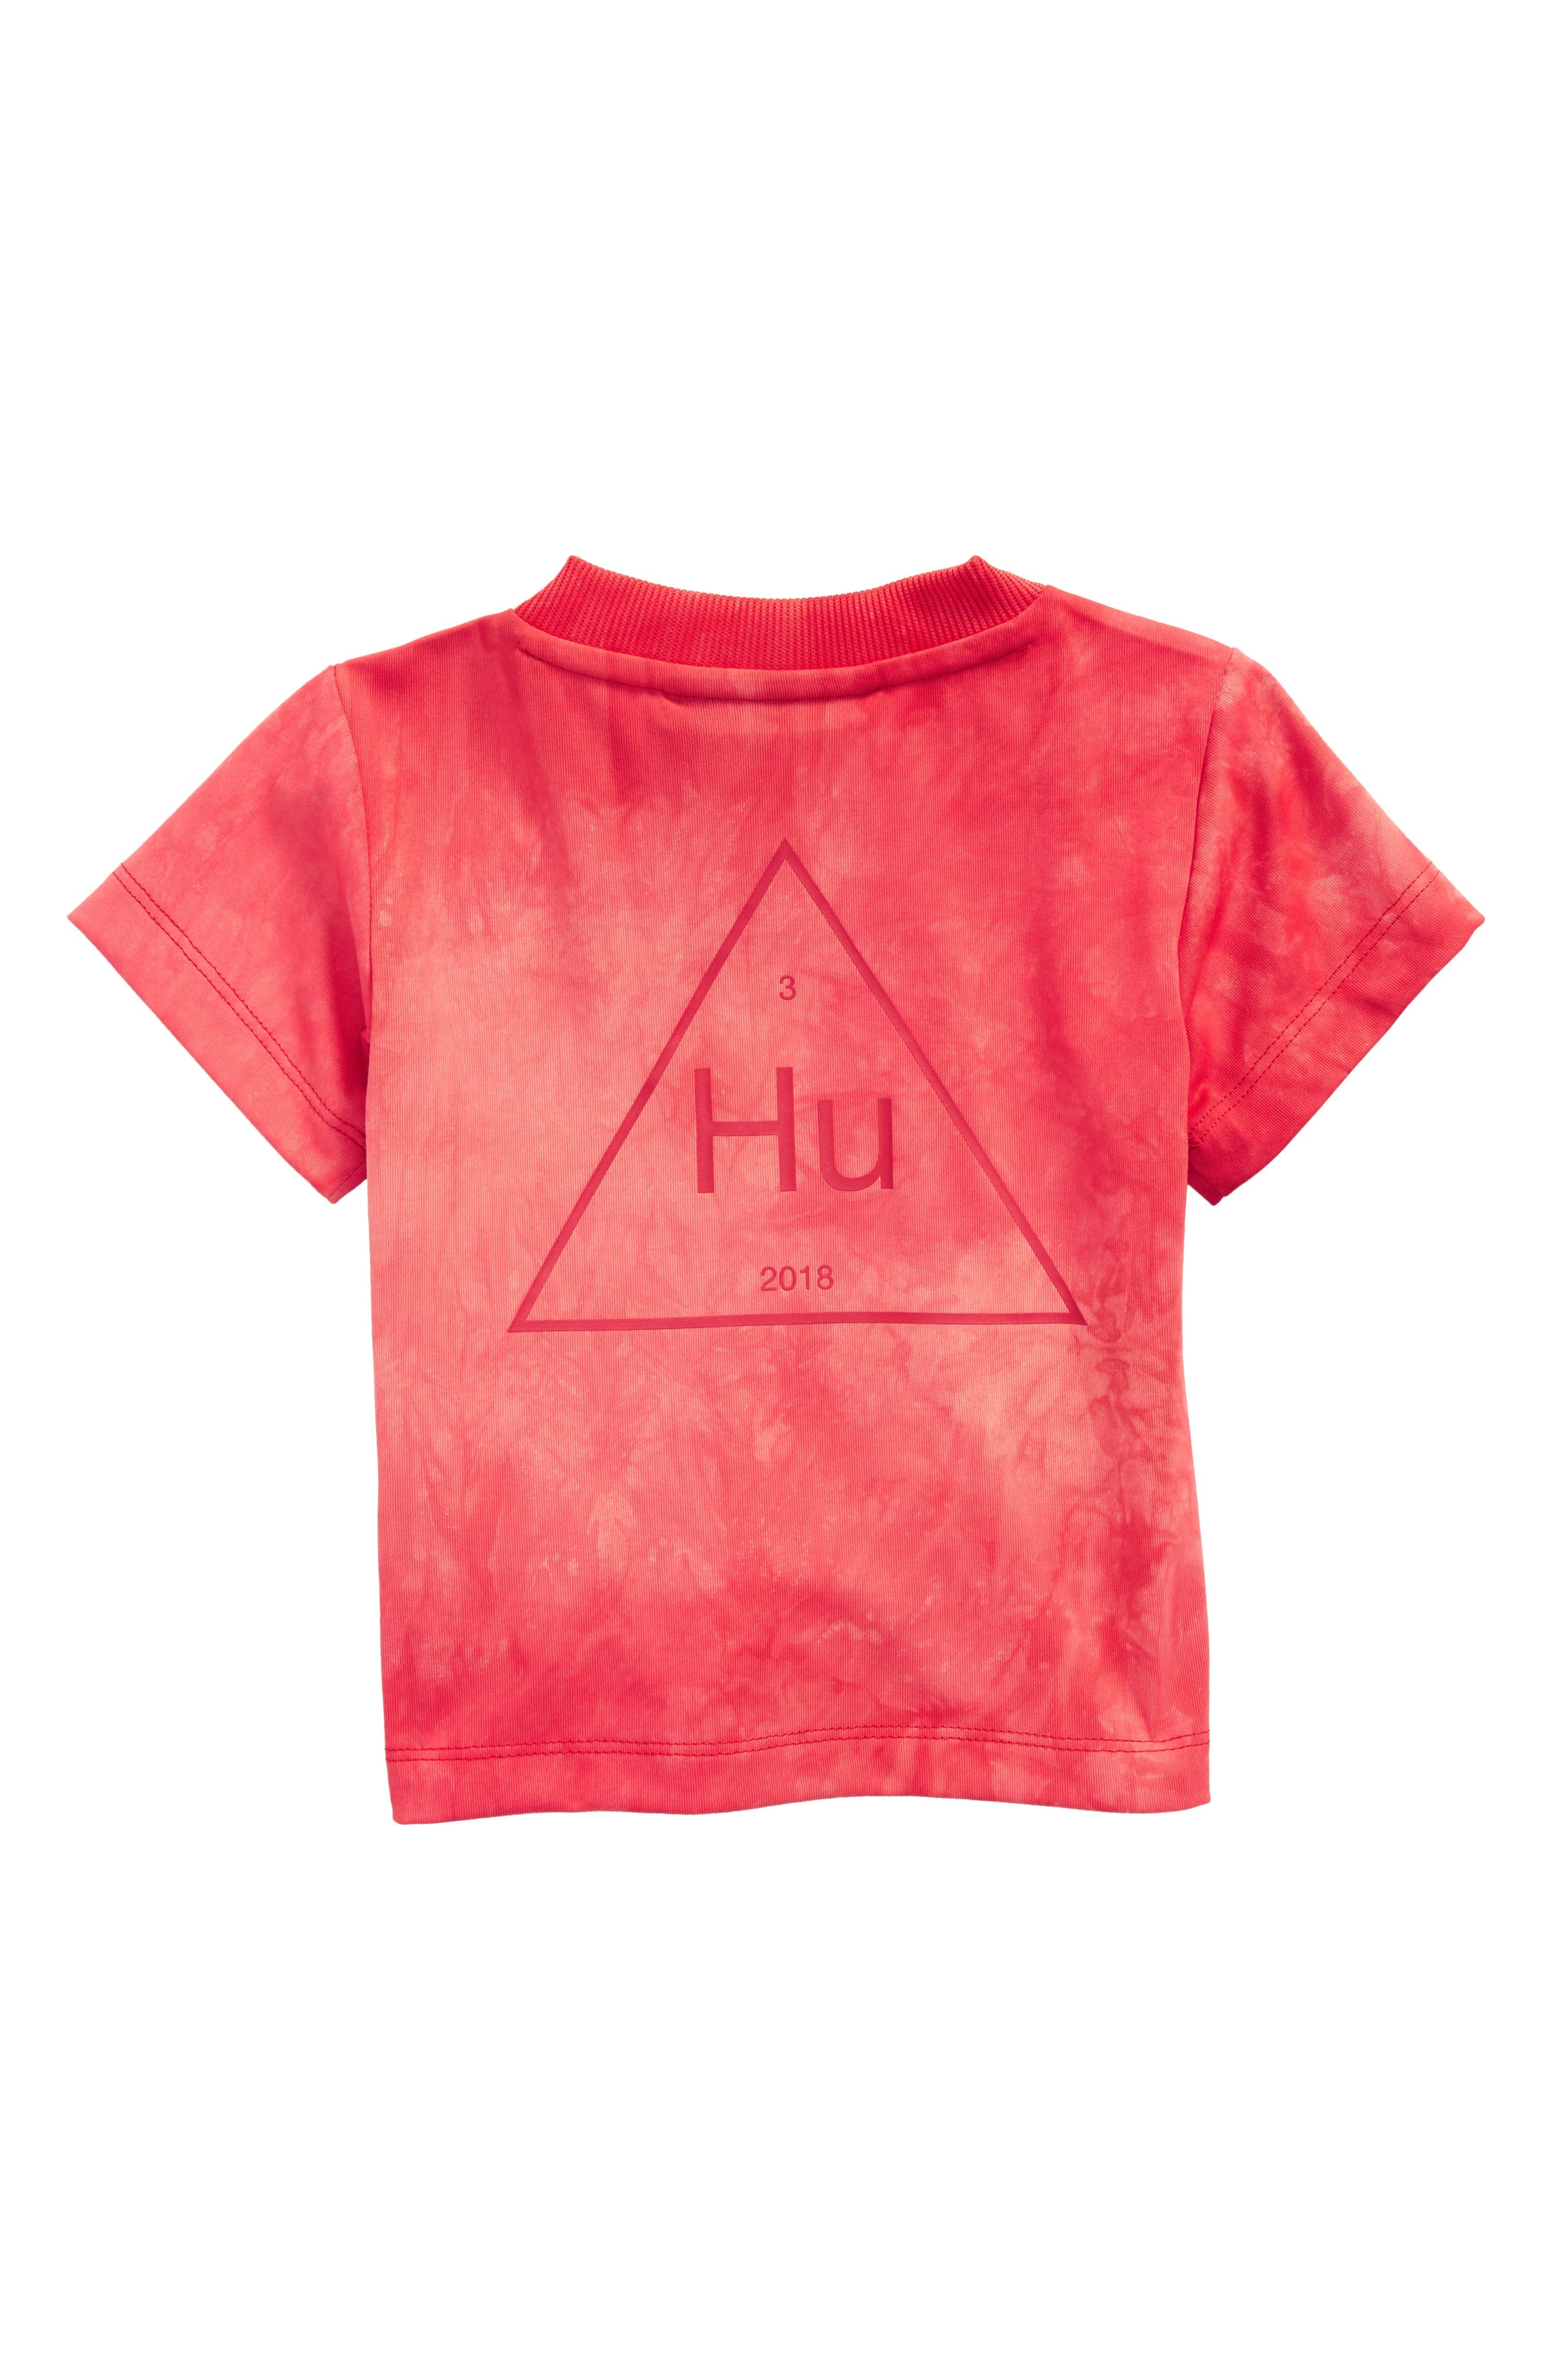 Hu Holi Tee,                             Alternate thumbnail 2, color,                             SCARLET / WHITE